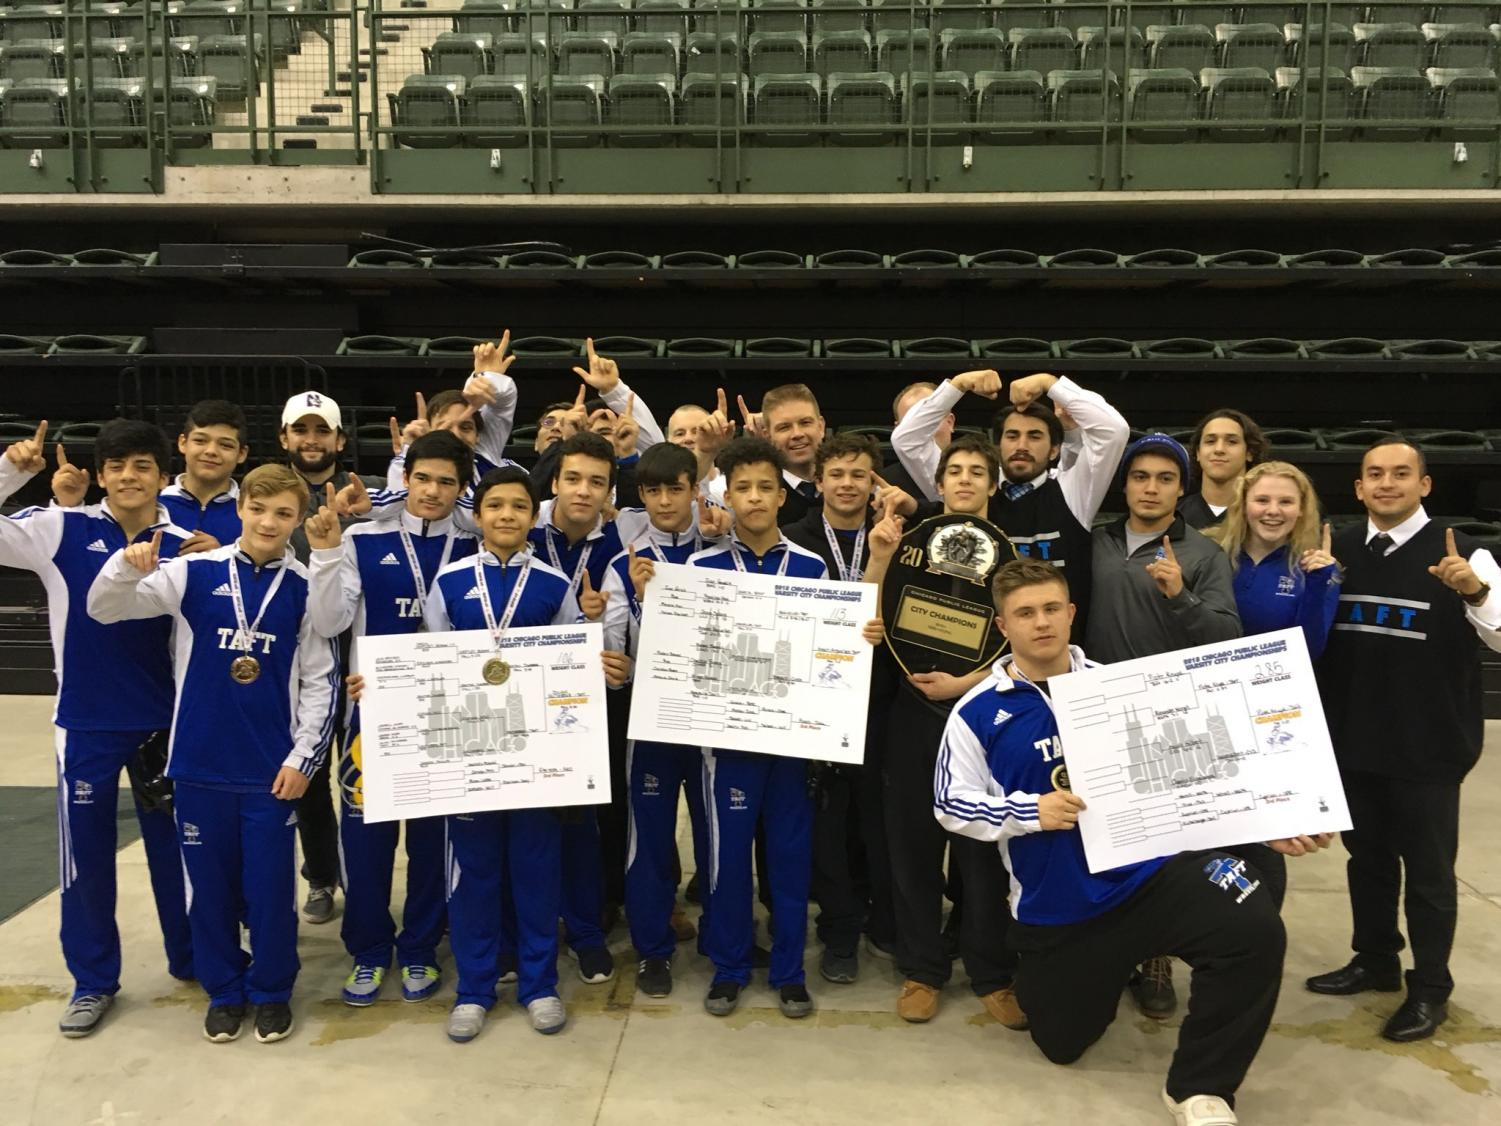 Taft wrestlers and coaches posing with their personal and team awards after Day 2 of the City Championships.